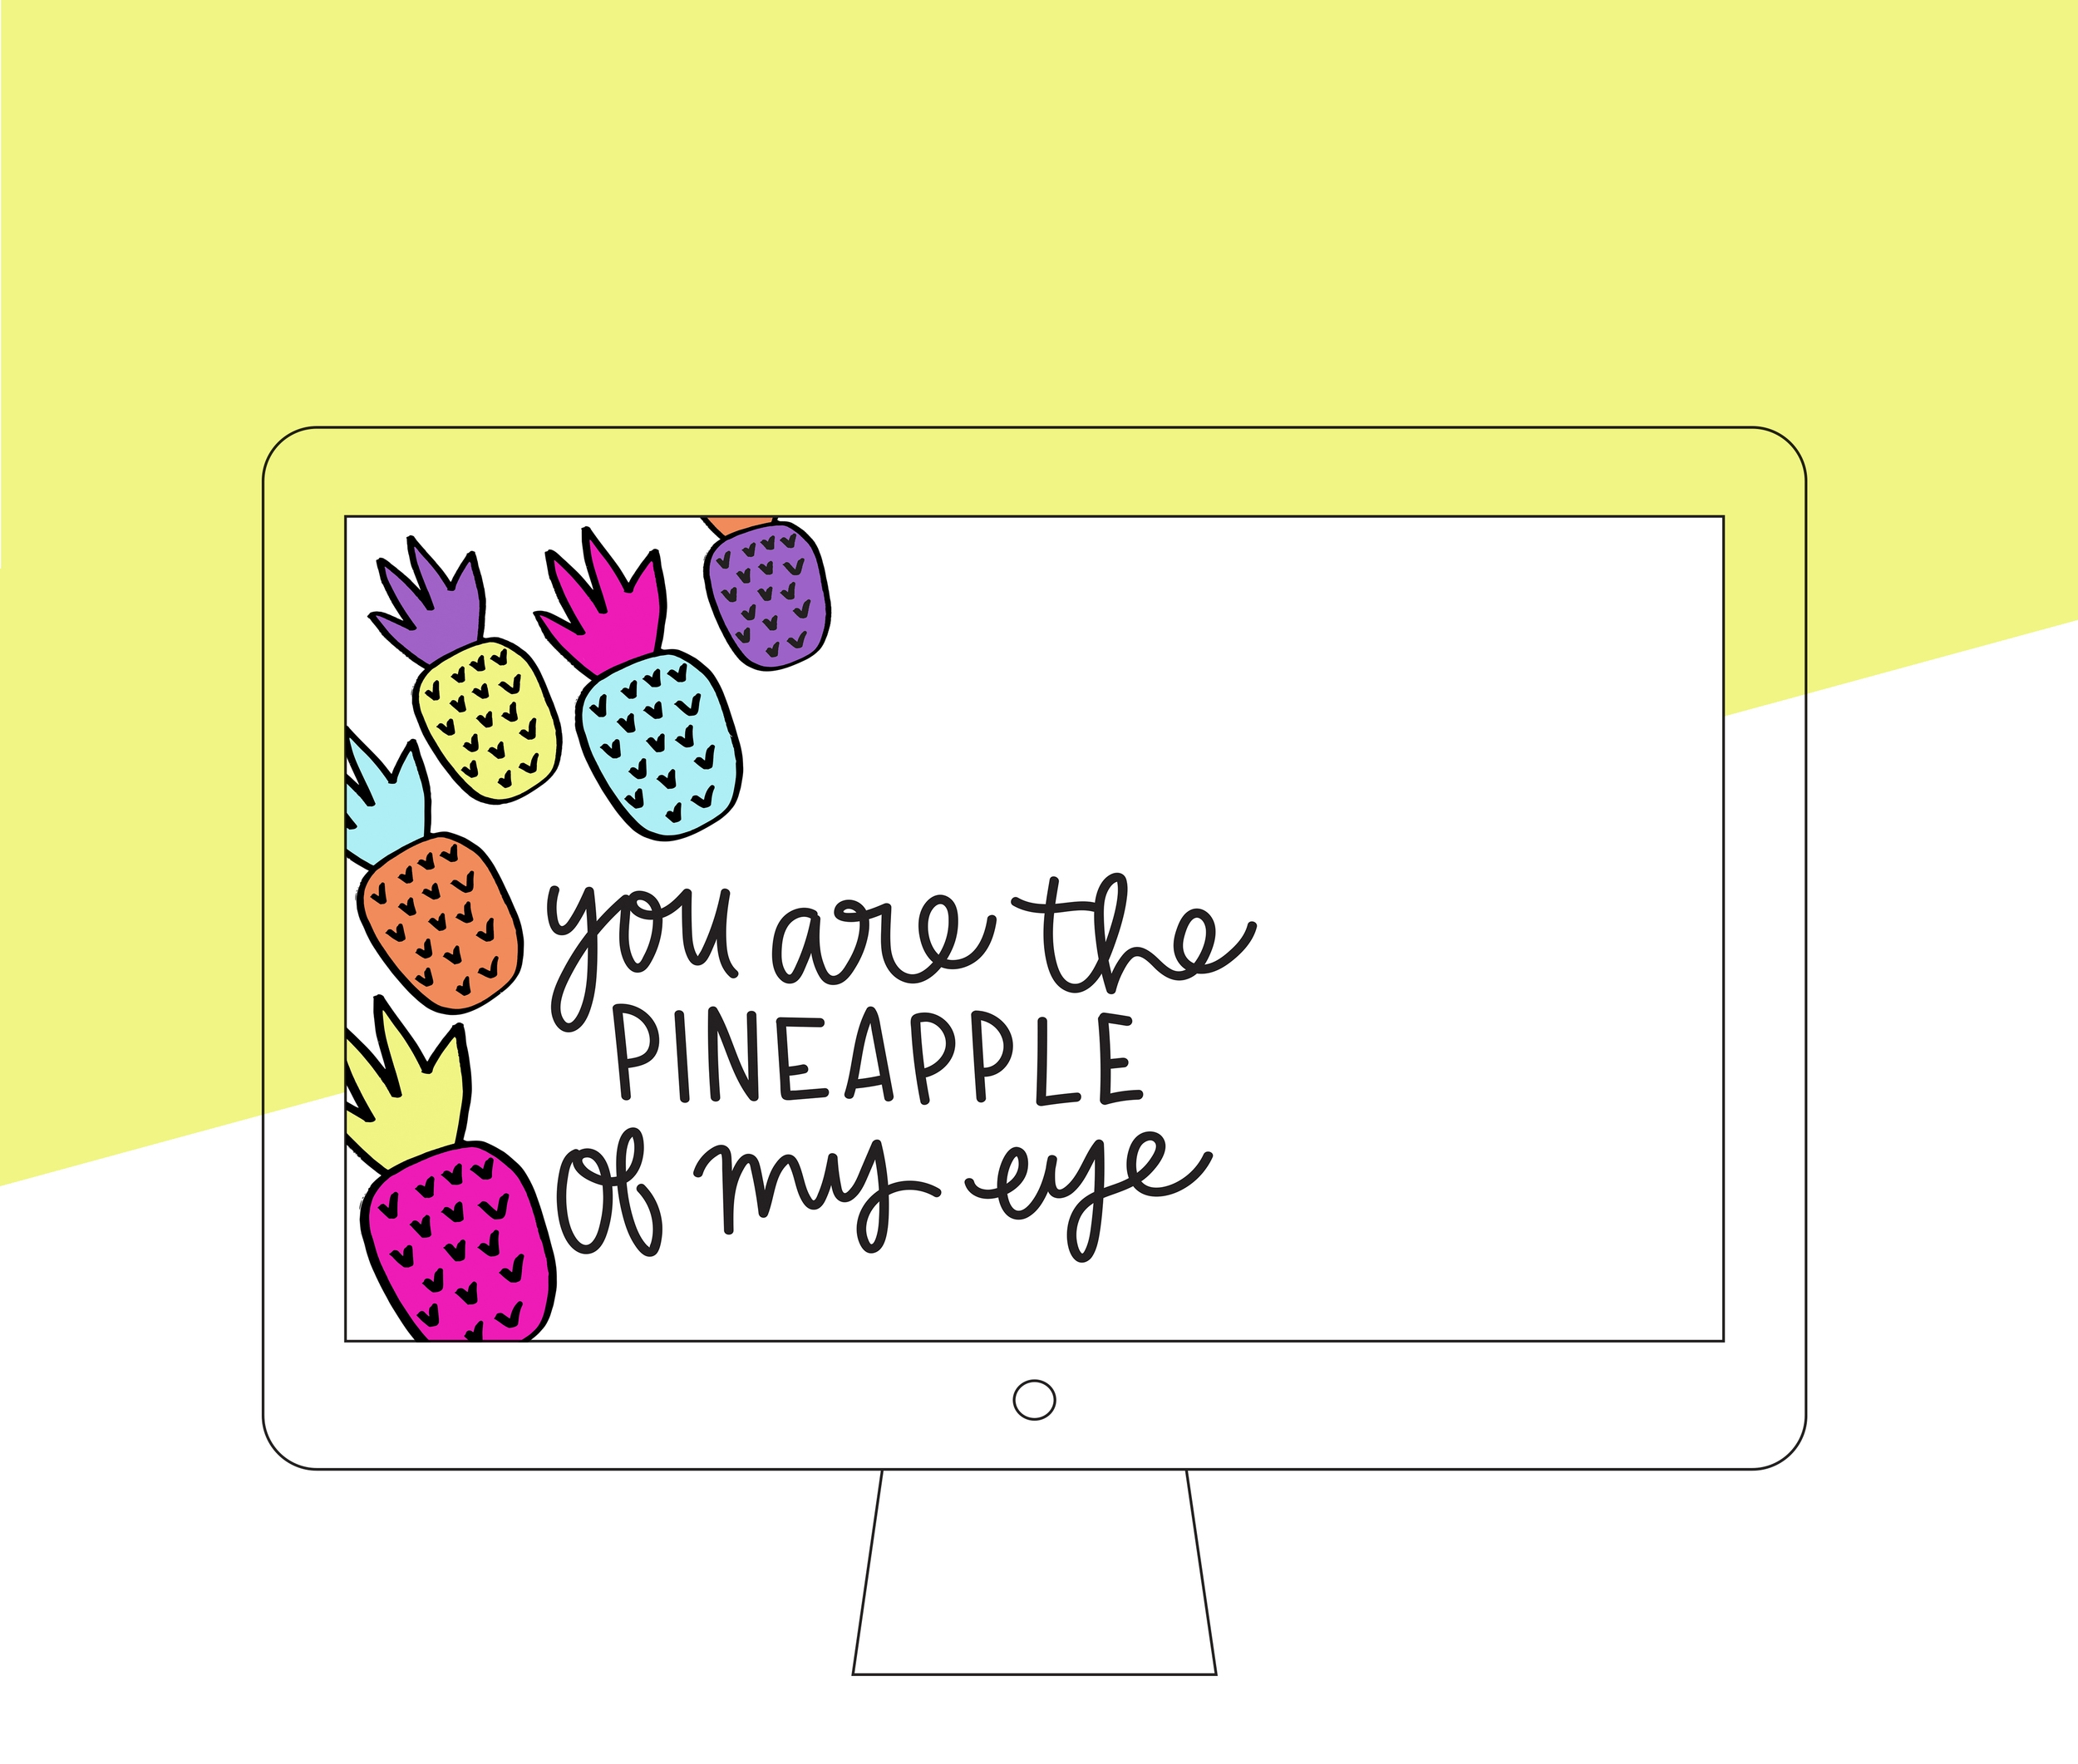 You Are The Pineapple Of My Eye Free Desktop Download by www.chelceytate.com